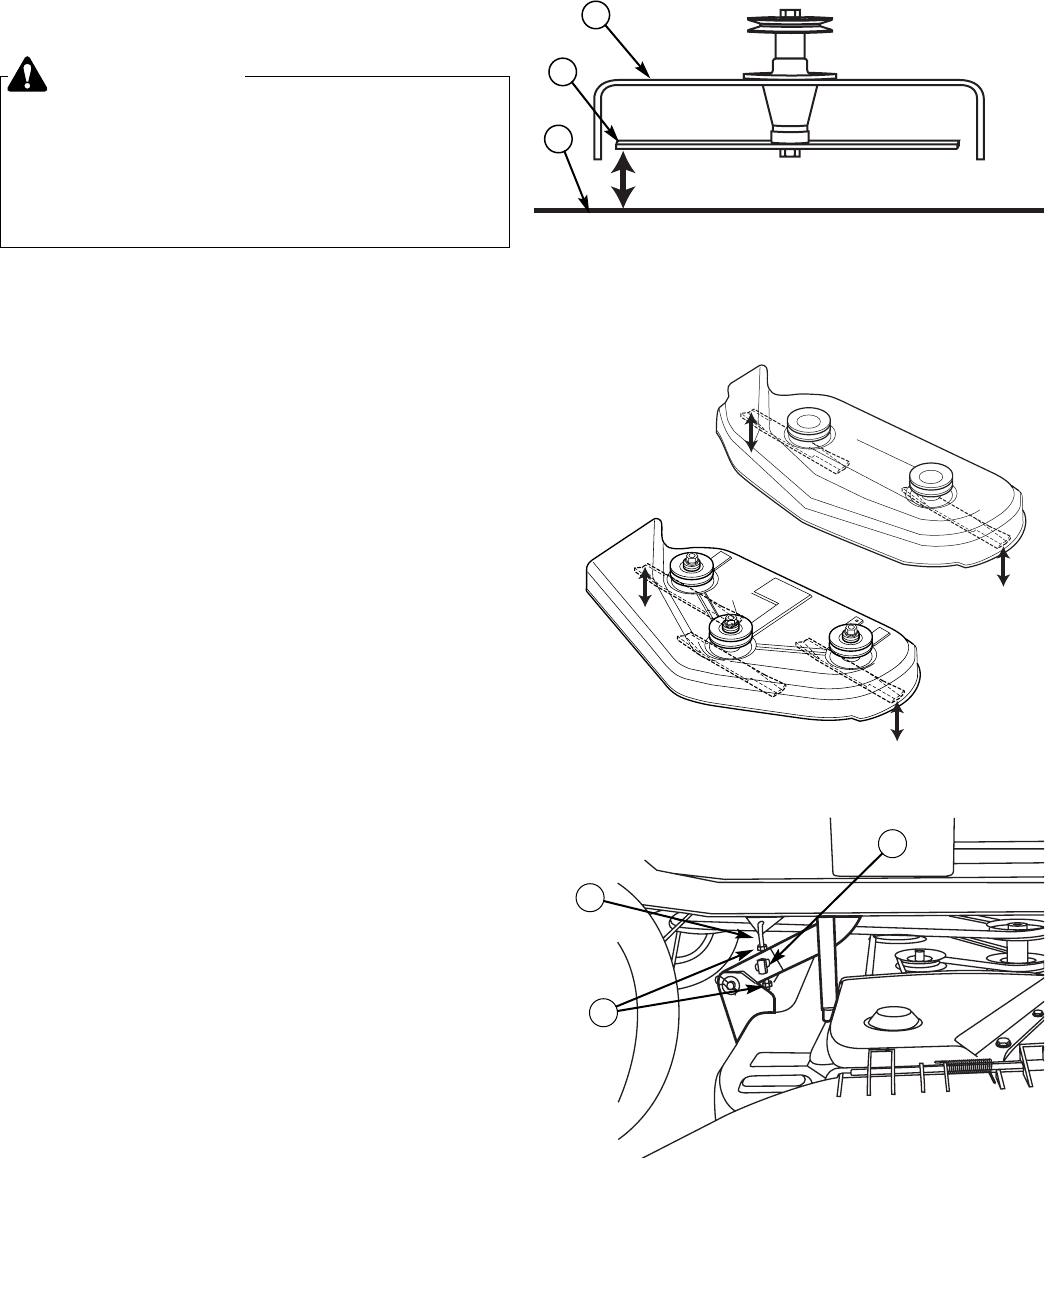 Page 33 of Snapper Lawn Mower 150Z Series User Guide